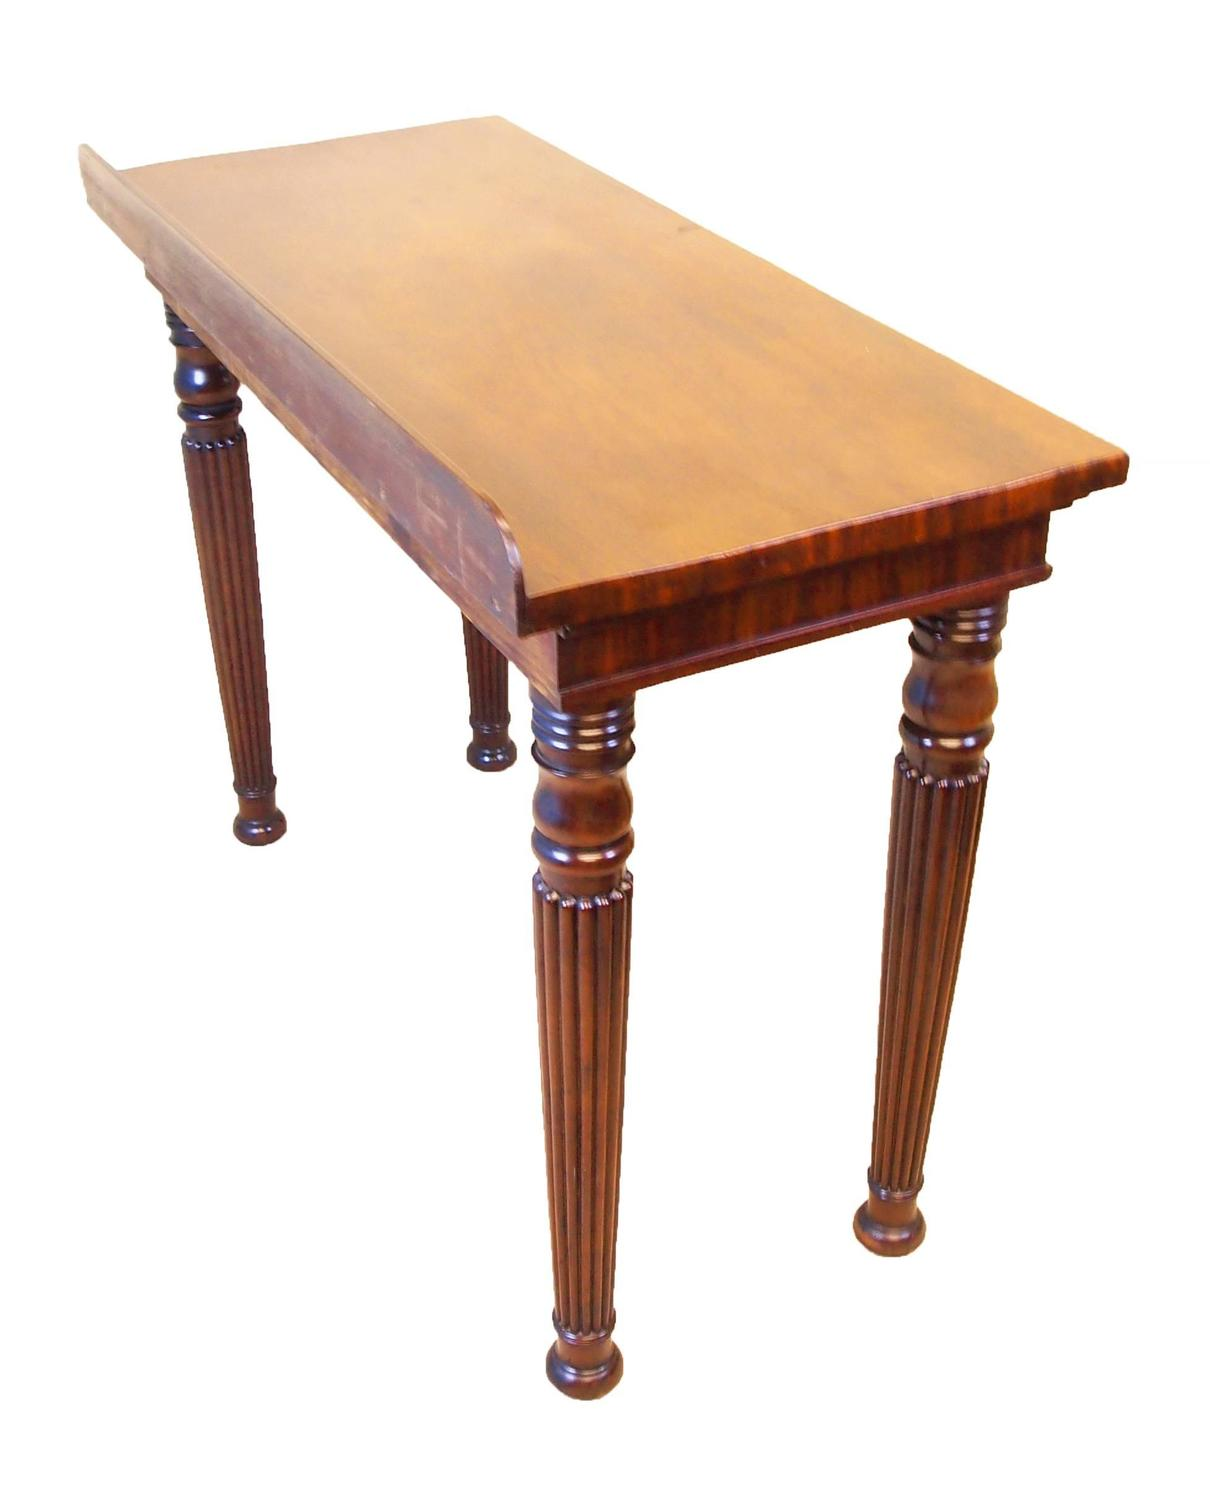 Foyer Table Sale : Antique regency mahogany console hall table for sale at